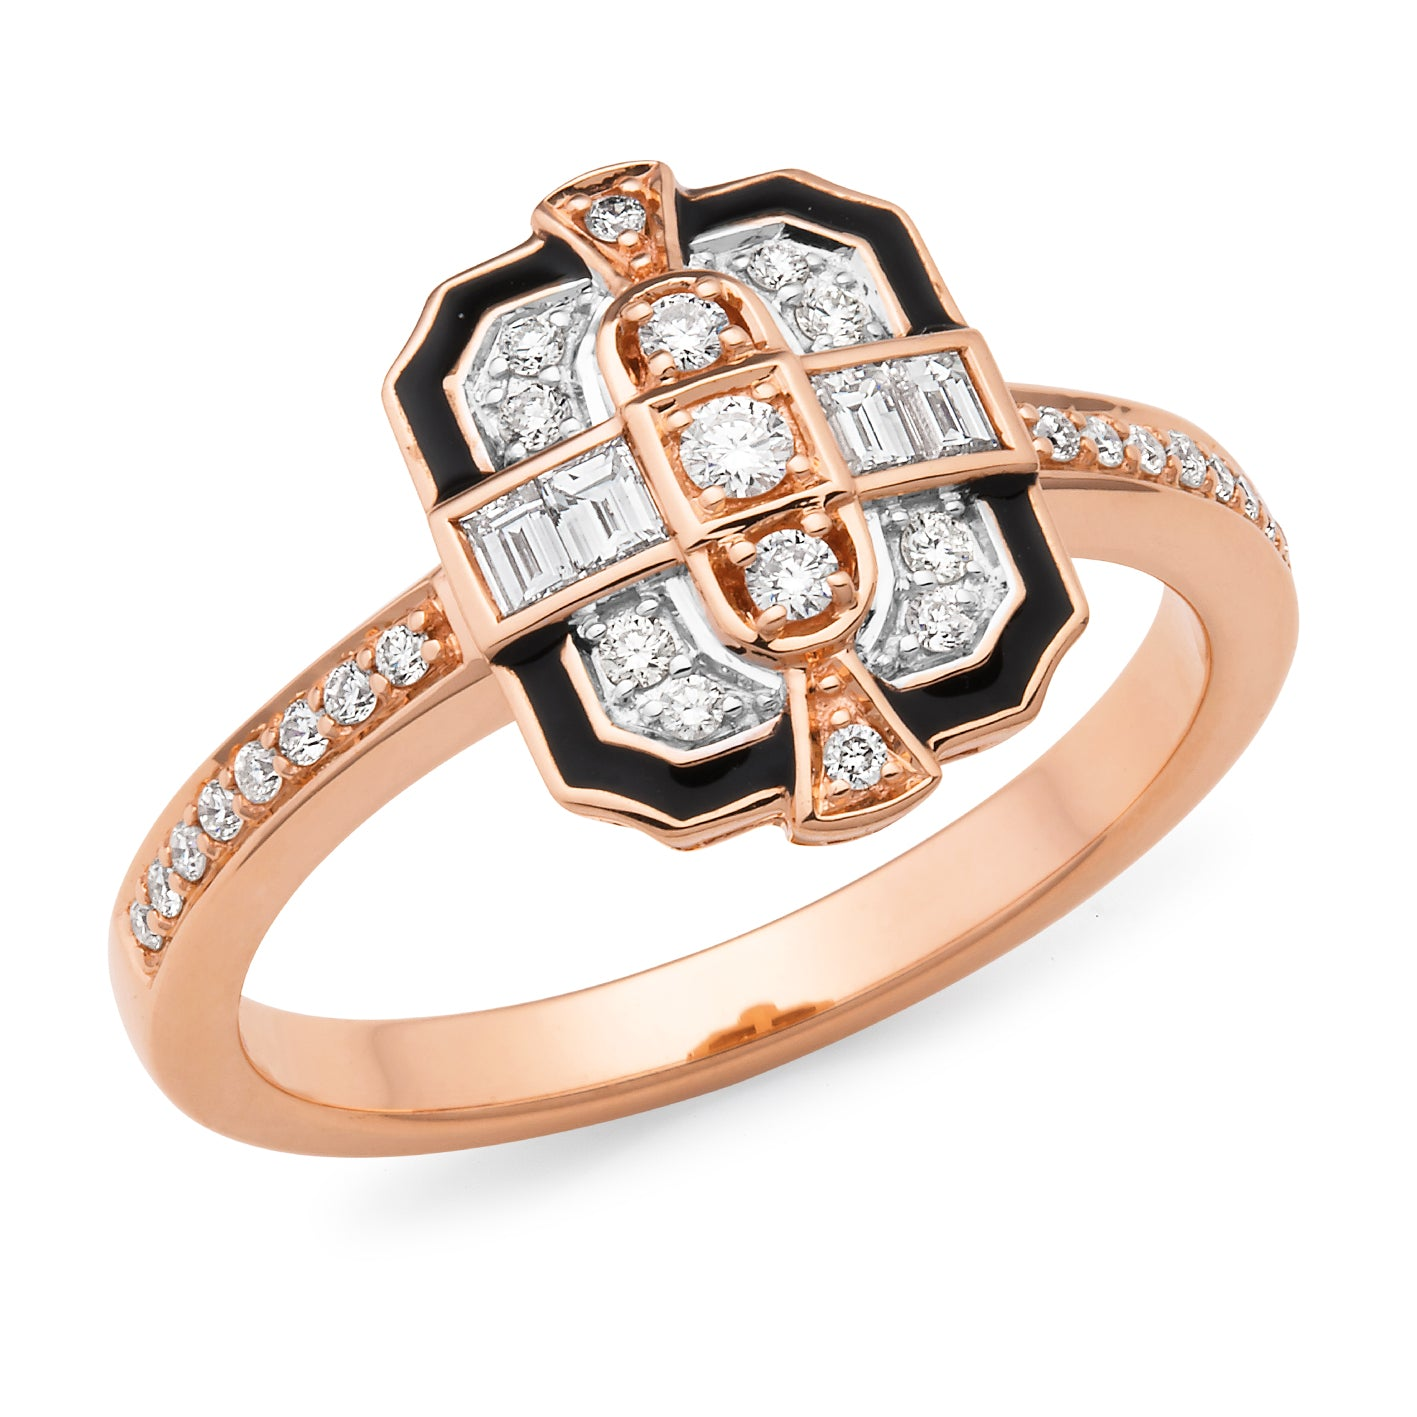 'Estelle' Art Deco Style Diamond Ring